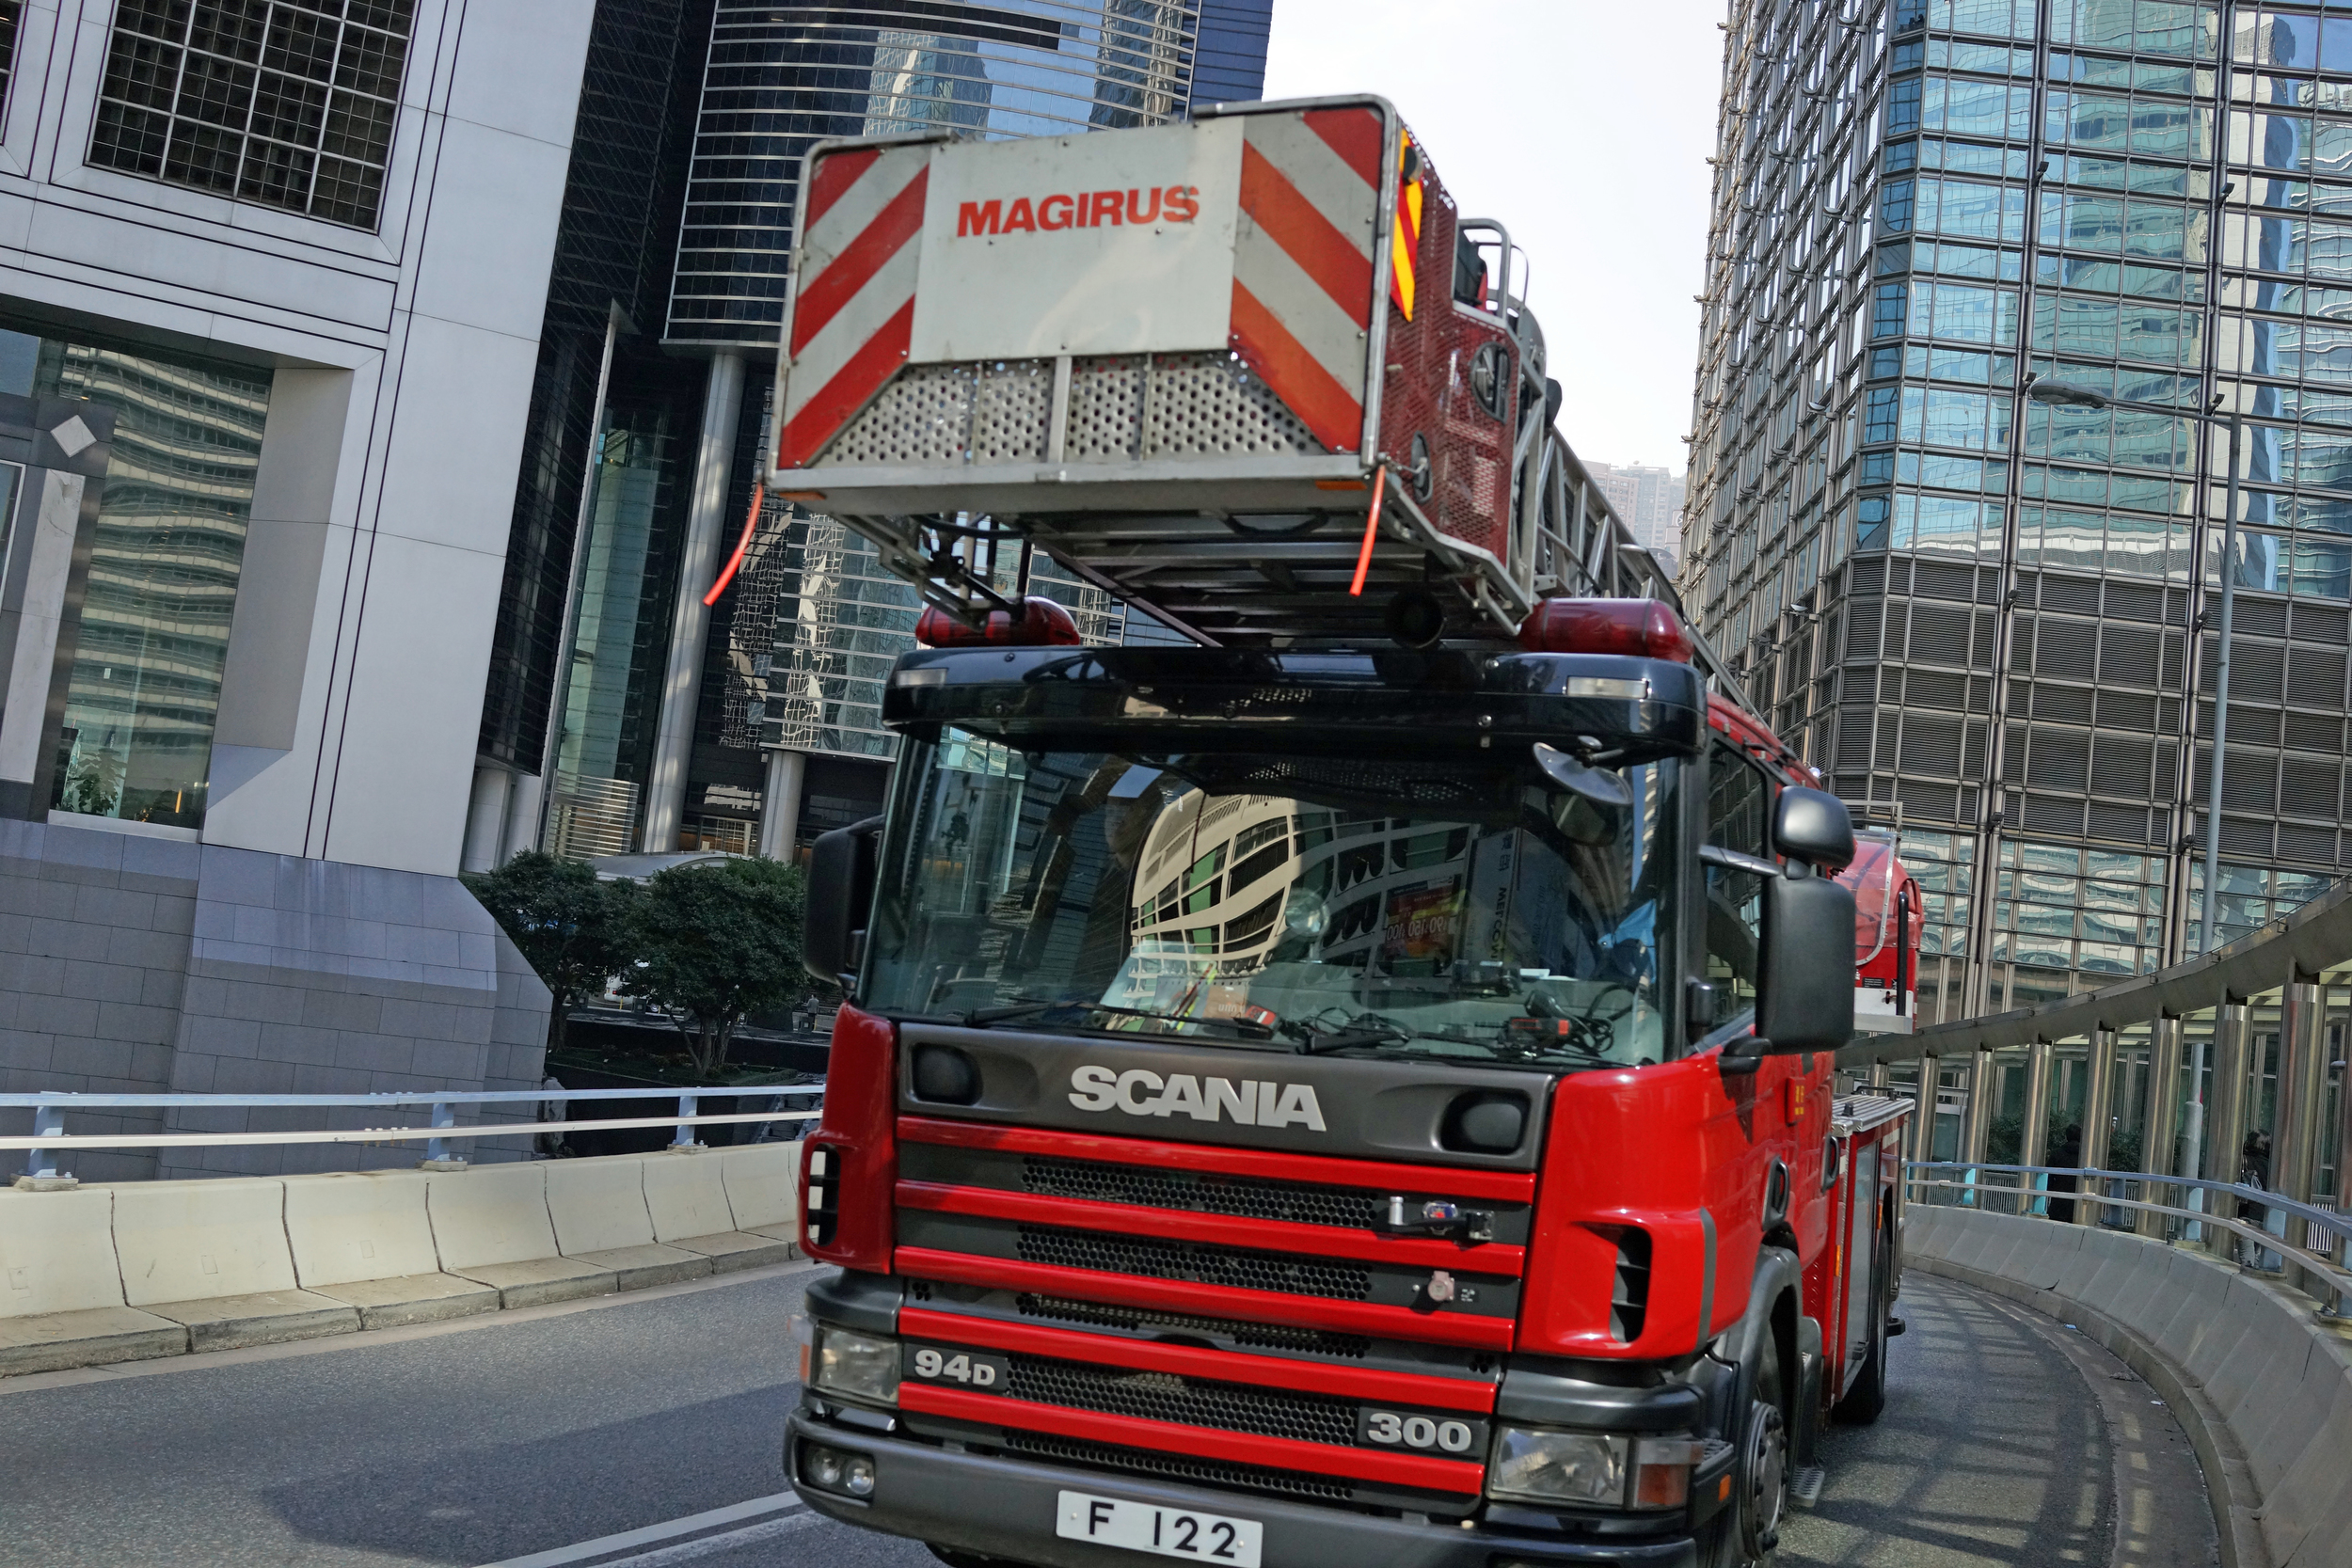 That's me getting very close to a Fire Truck!